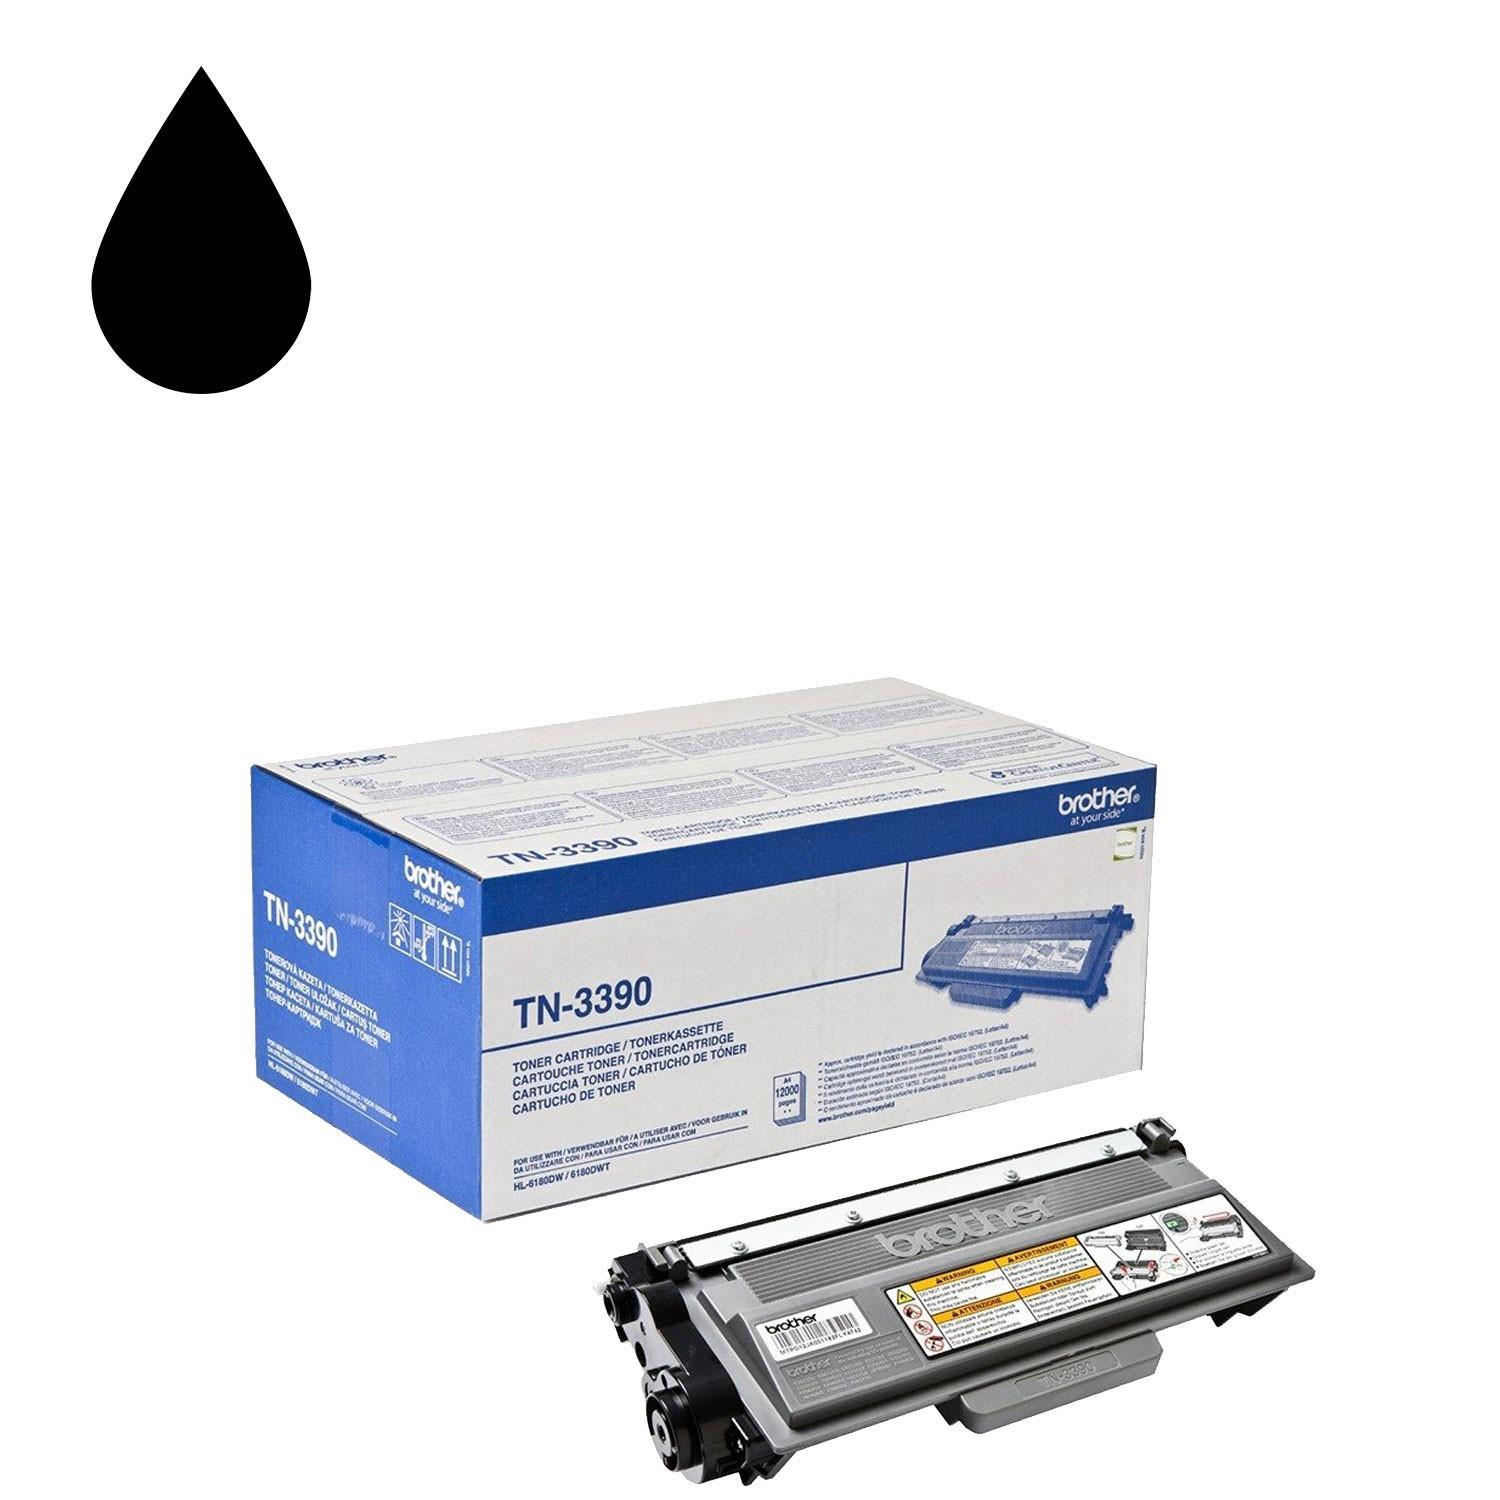 Brother Tn3390 TN-3390 Black Toner Super High Yield 12000 pages